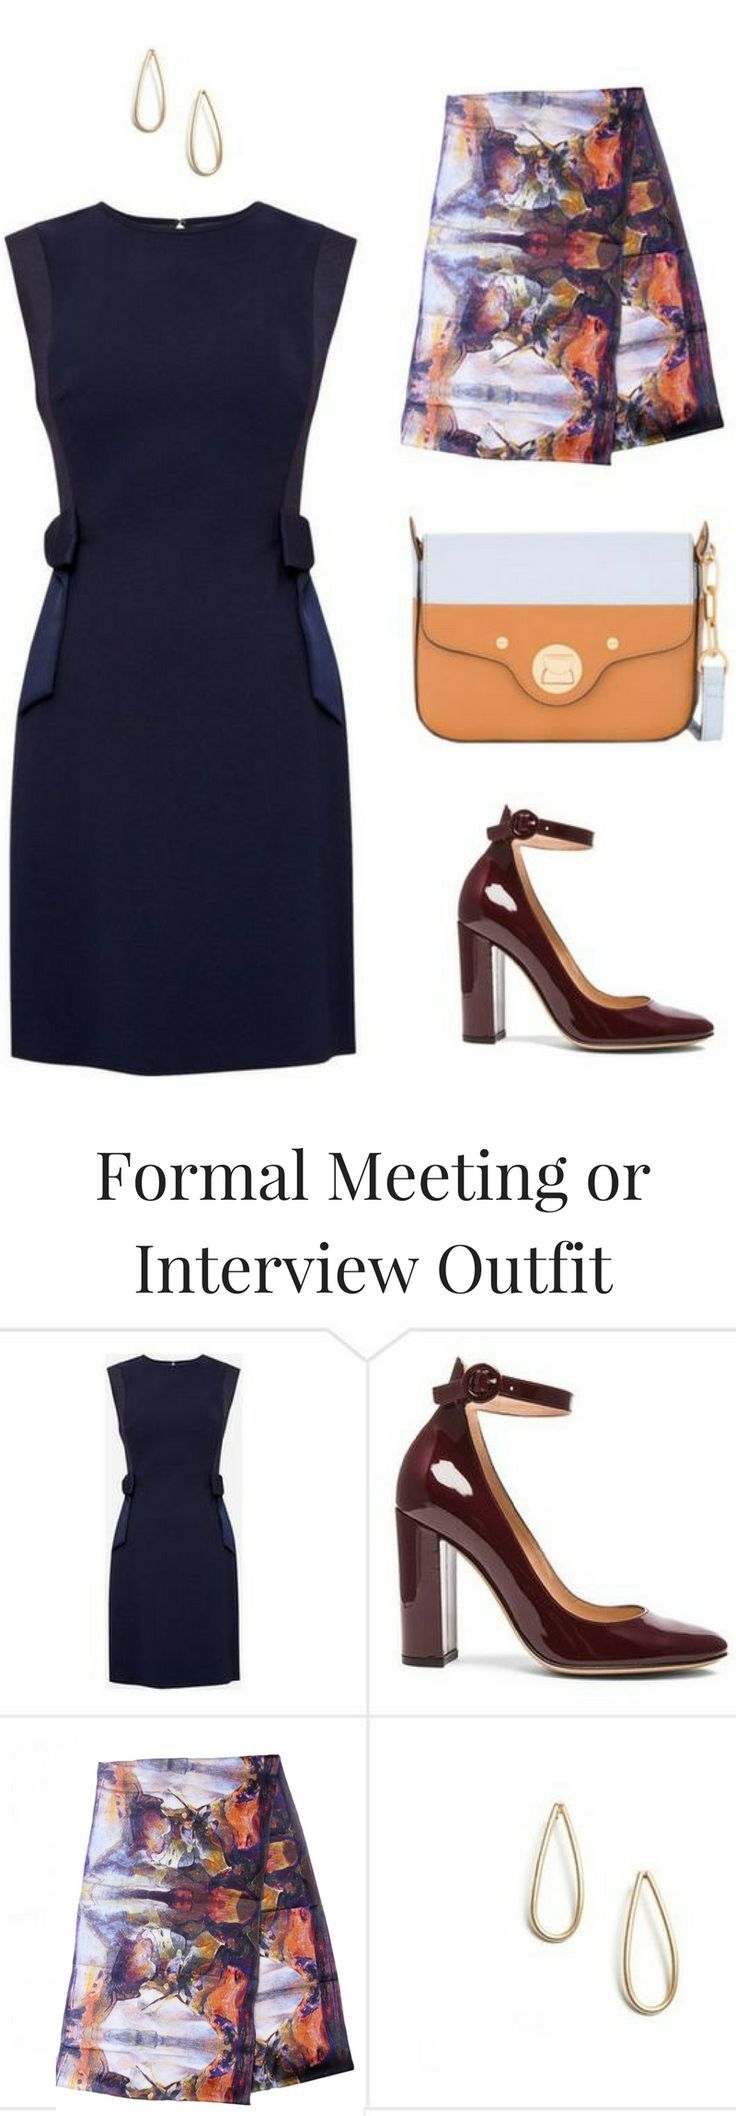 features of a formal meeting